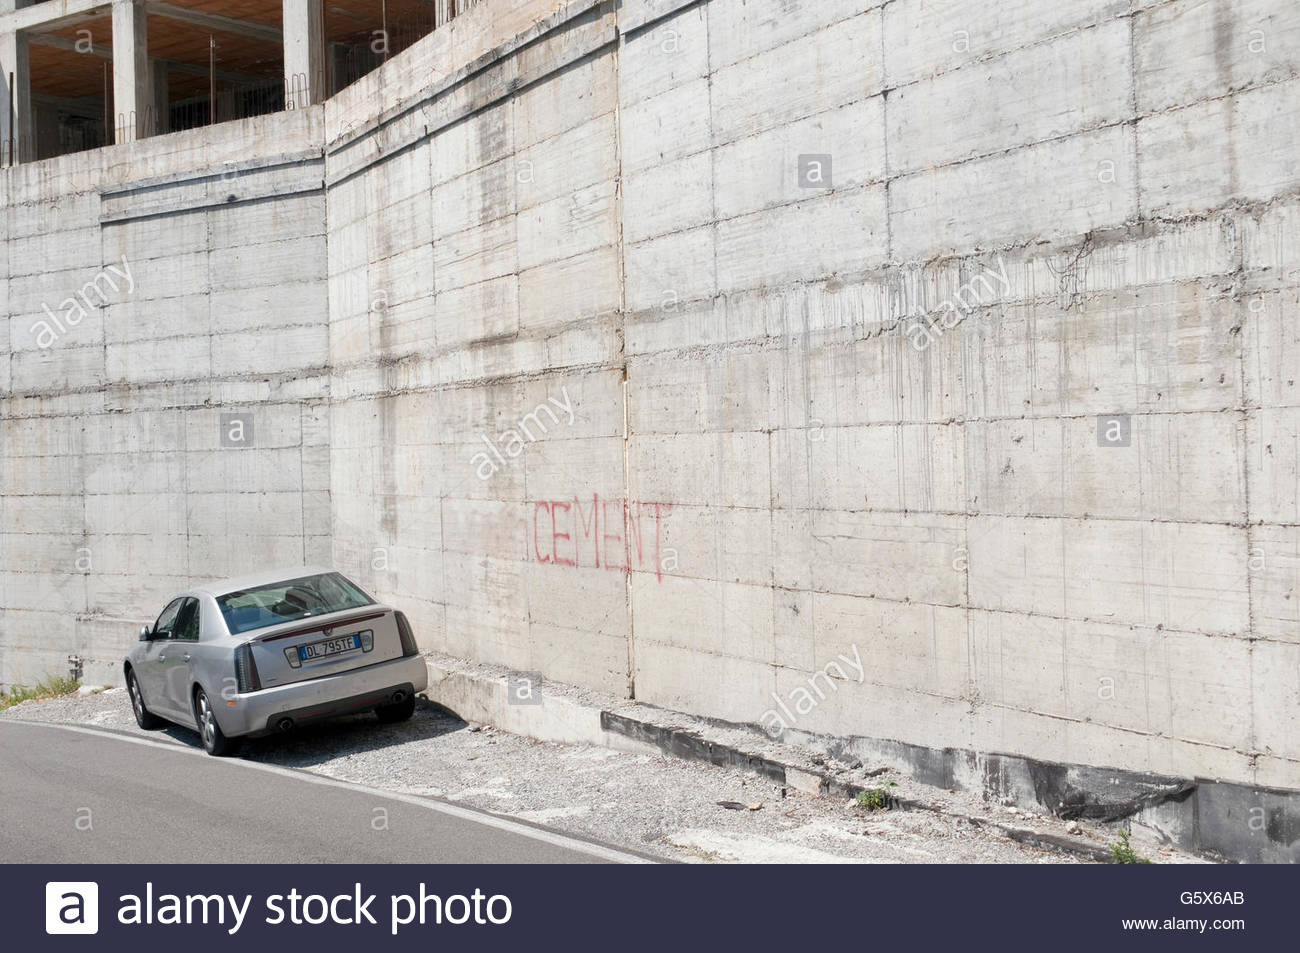 Parked car and armored concrete wall - Stock Image